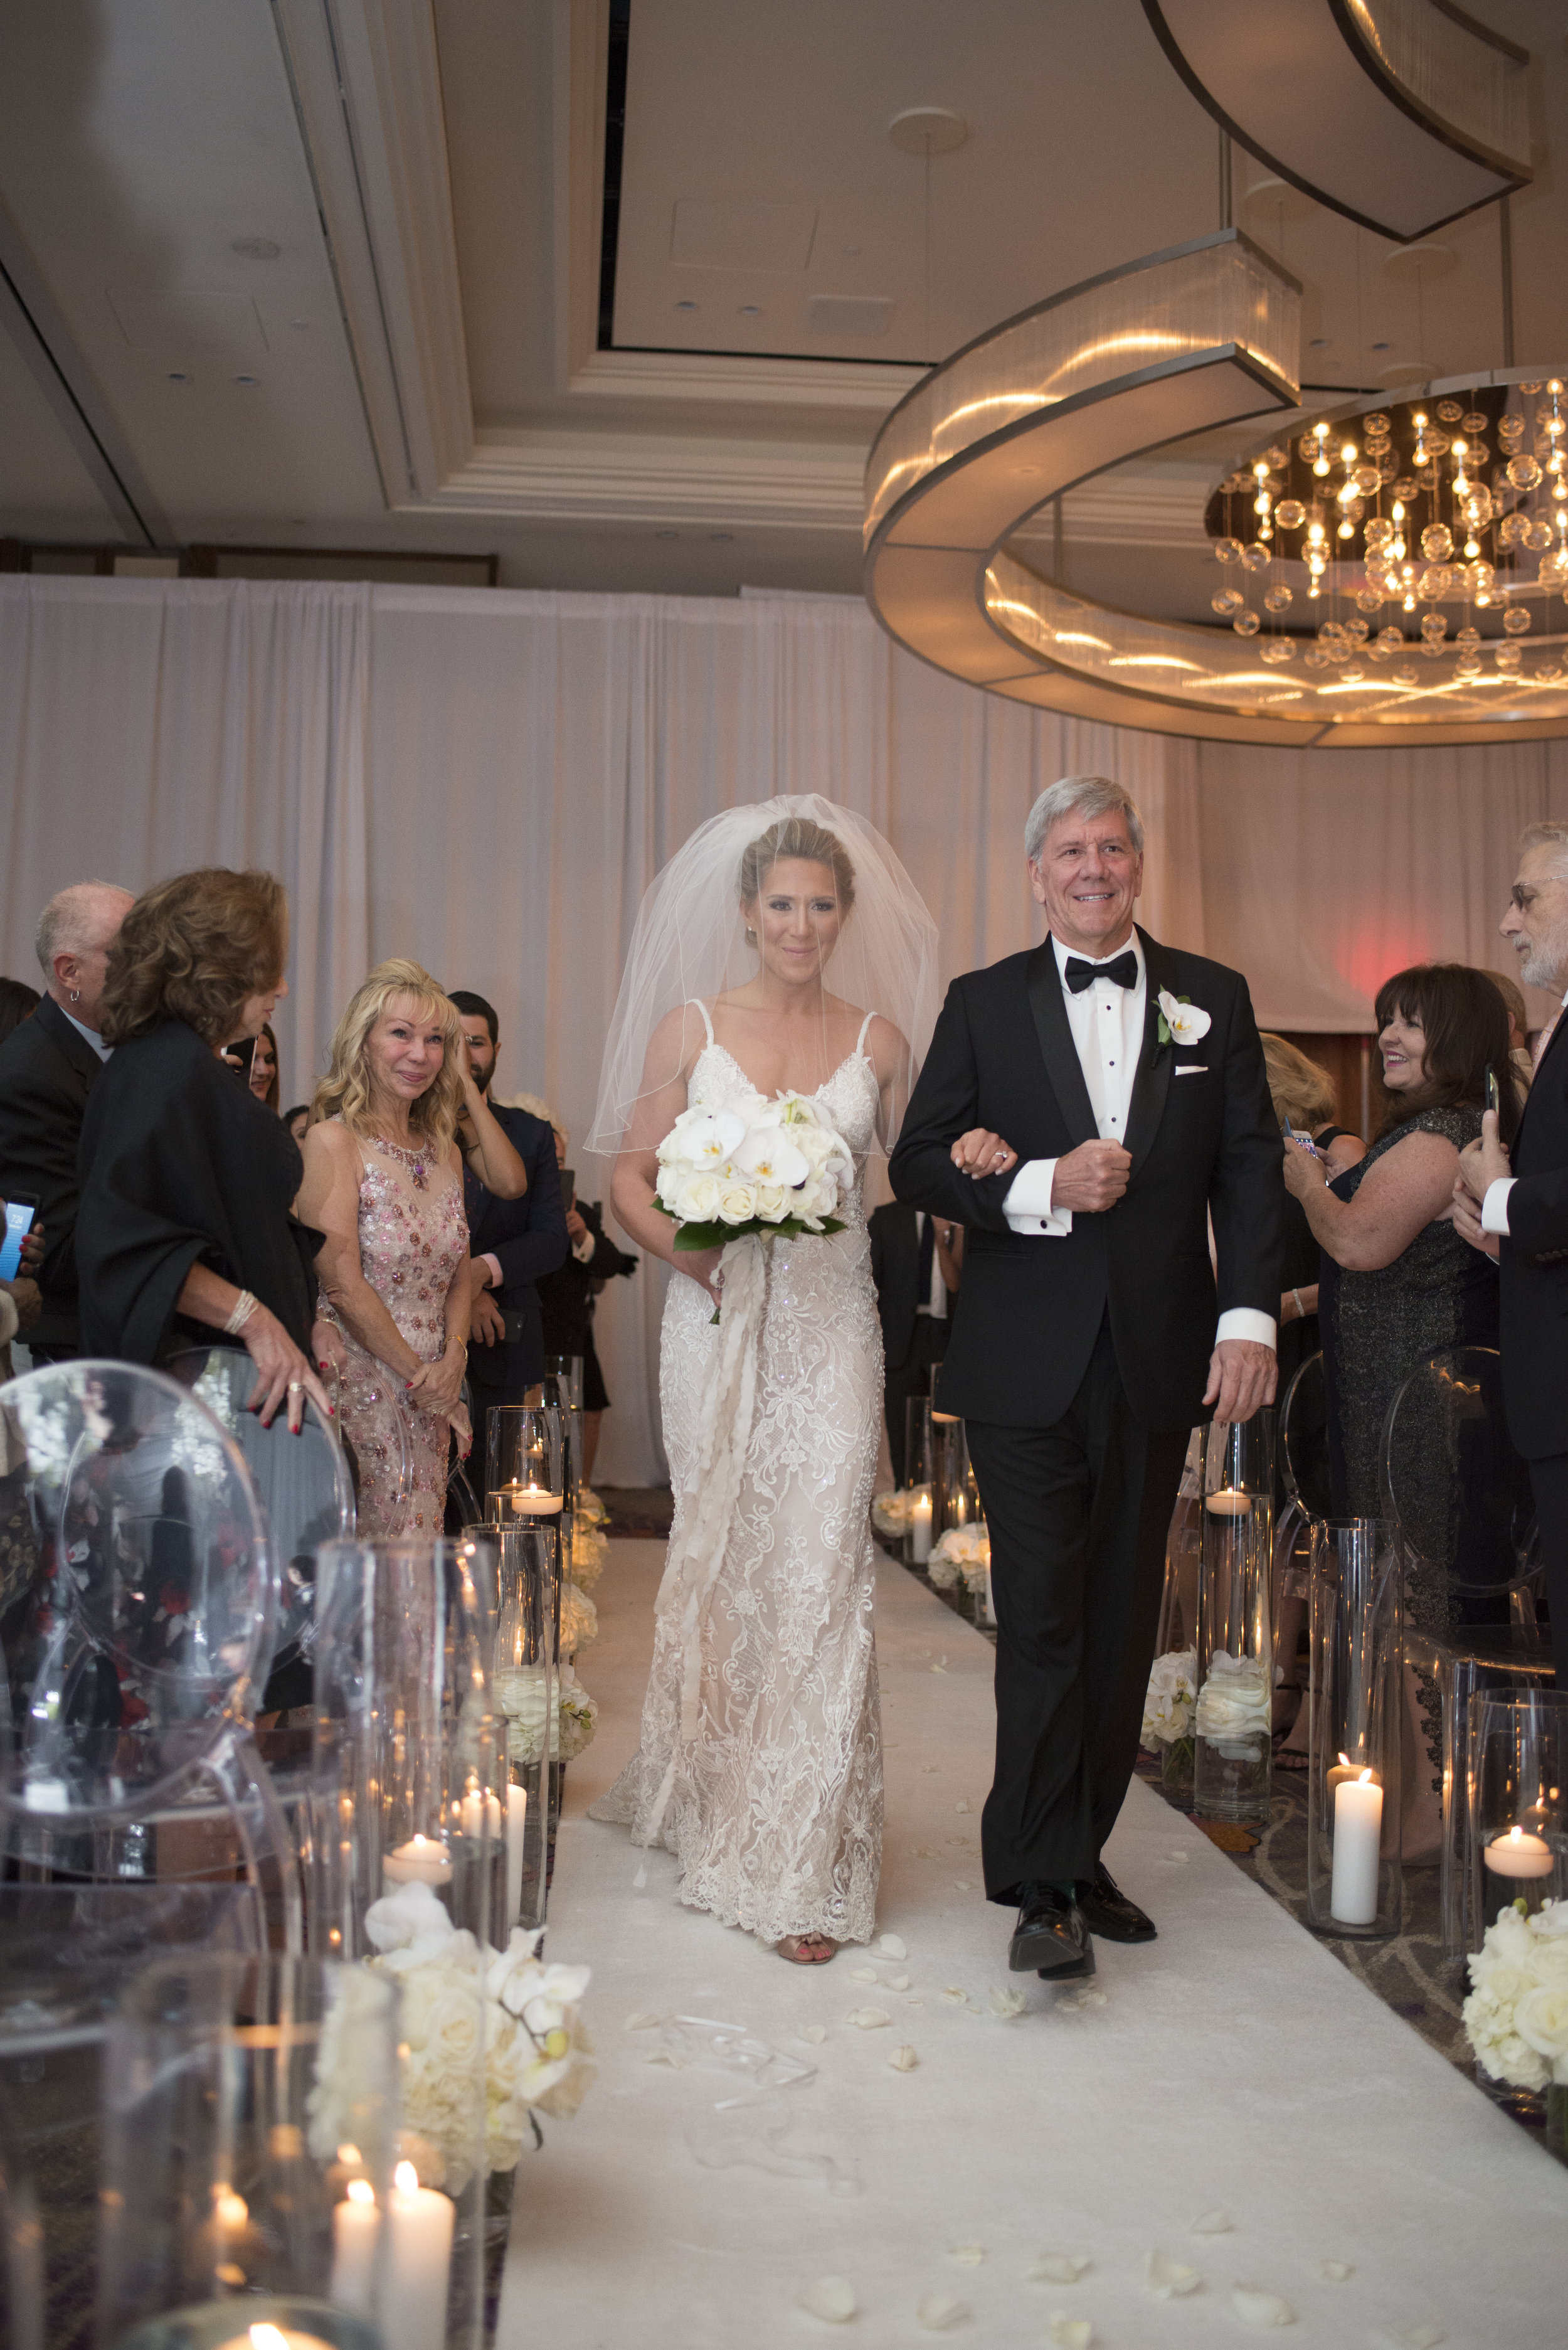 Jewish Wedding Ceremony. Bride being escorted down the aisle by her father. WEDDING PLANNING & EVENT DESIGN • Andrea Eppolito Events ,PHOTOGRAPHY • AltF Photography ,FLORAL AND DECOR DESIGN & PRODUCTION • Destinations by Design , CATERING • Mandarin Oriental Las Vegas , COCKTAILS •  The Grand Bevy , WEDDING GOWN •  Galia Lahav ,SHOES •  Jimmy Choo